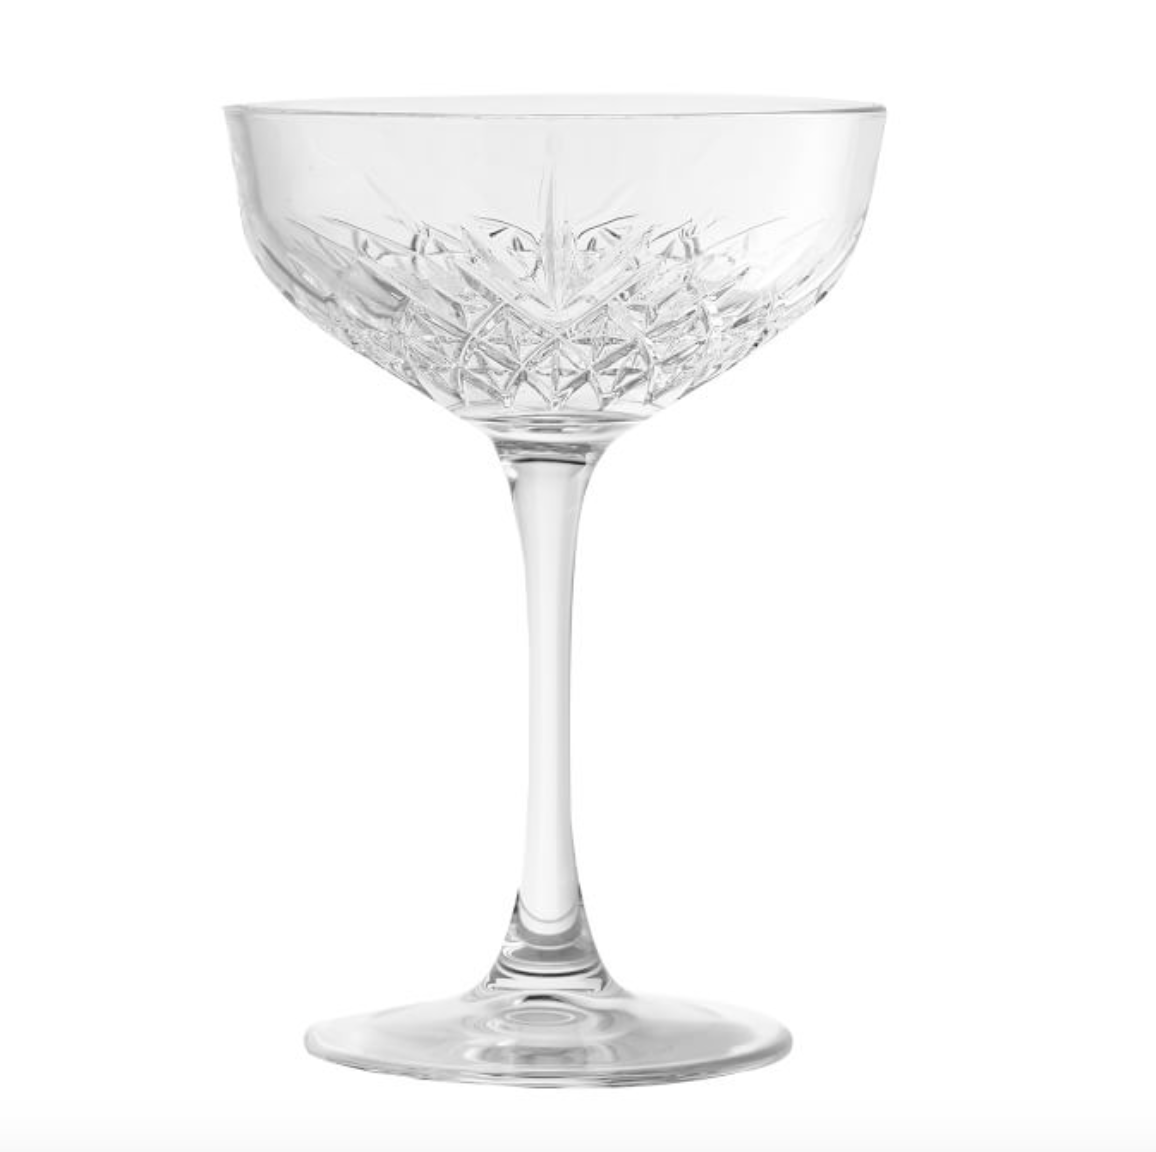 Trellis Coupe Glass, Set of 4 - Clear